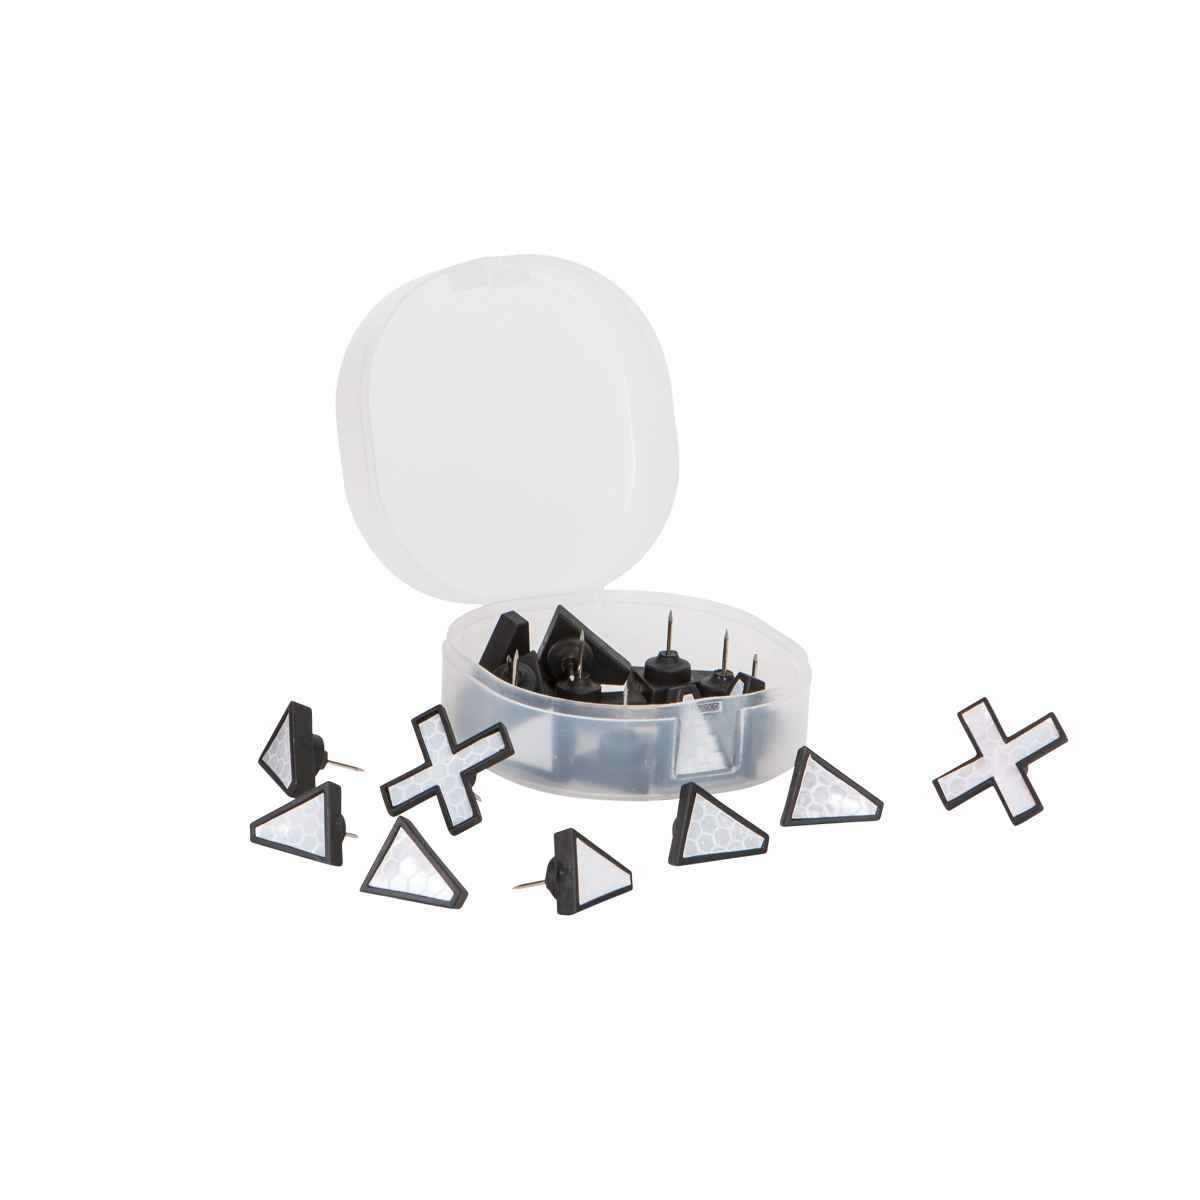 Allen Company X Marks The Spot Trail Tacks (Pack of 20), Black 478